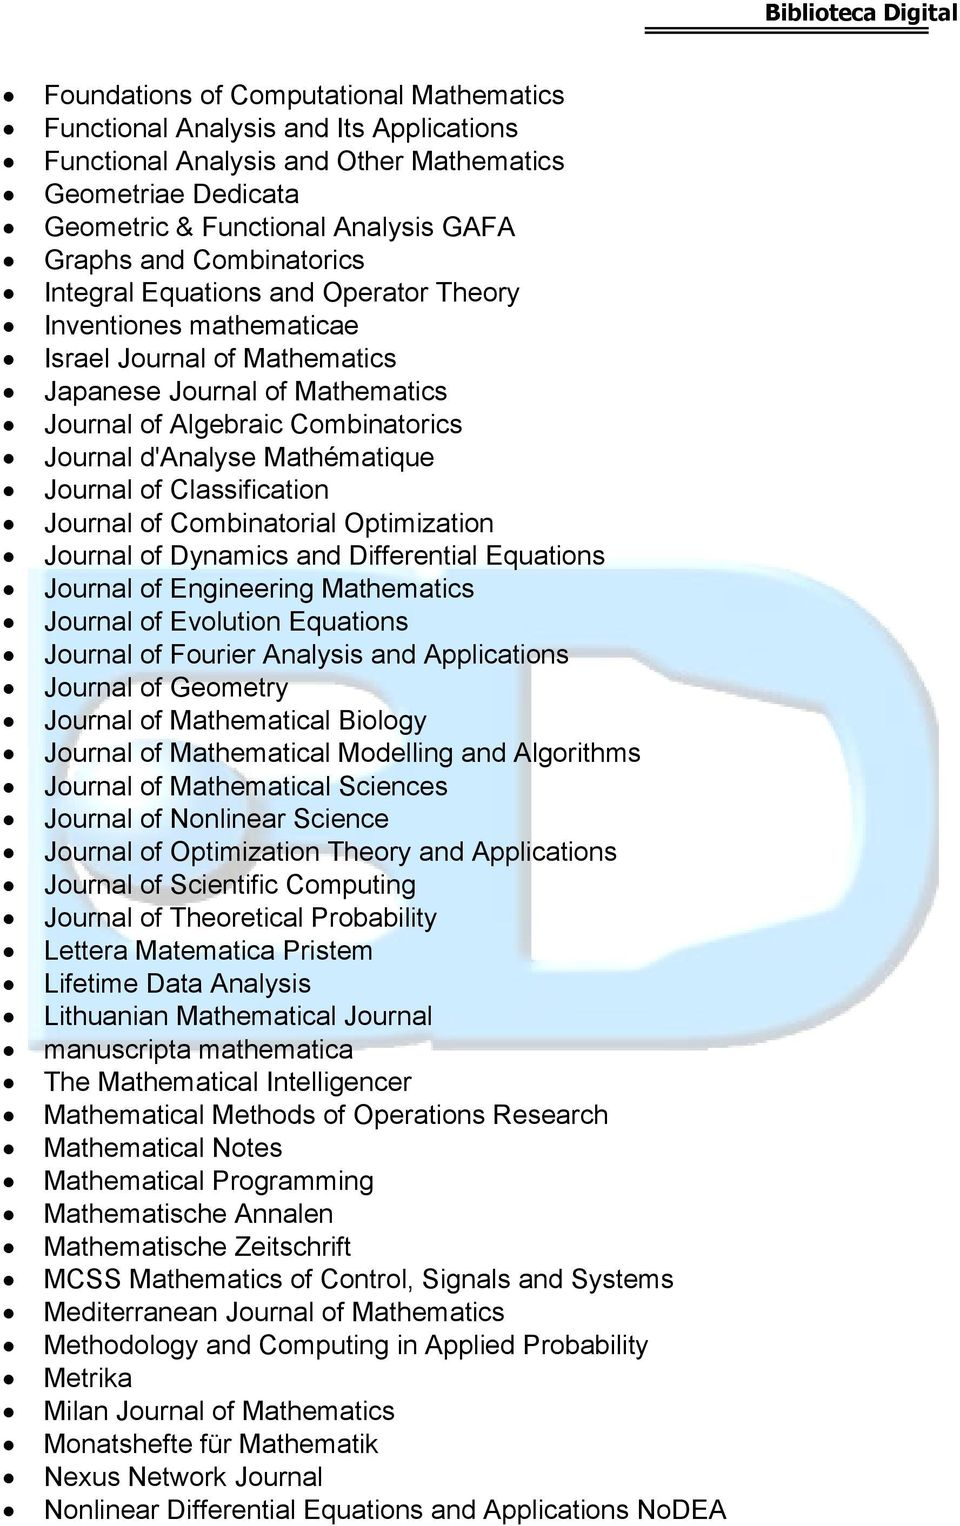 Mathématique Journal of Classification Journal of Combinatorial Optimization Journal of Dynamics and Differential Equations Journal of Engineering Mathematics Journal of Evolution Equations Journal